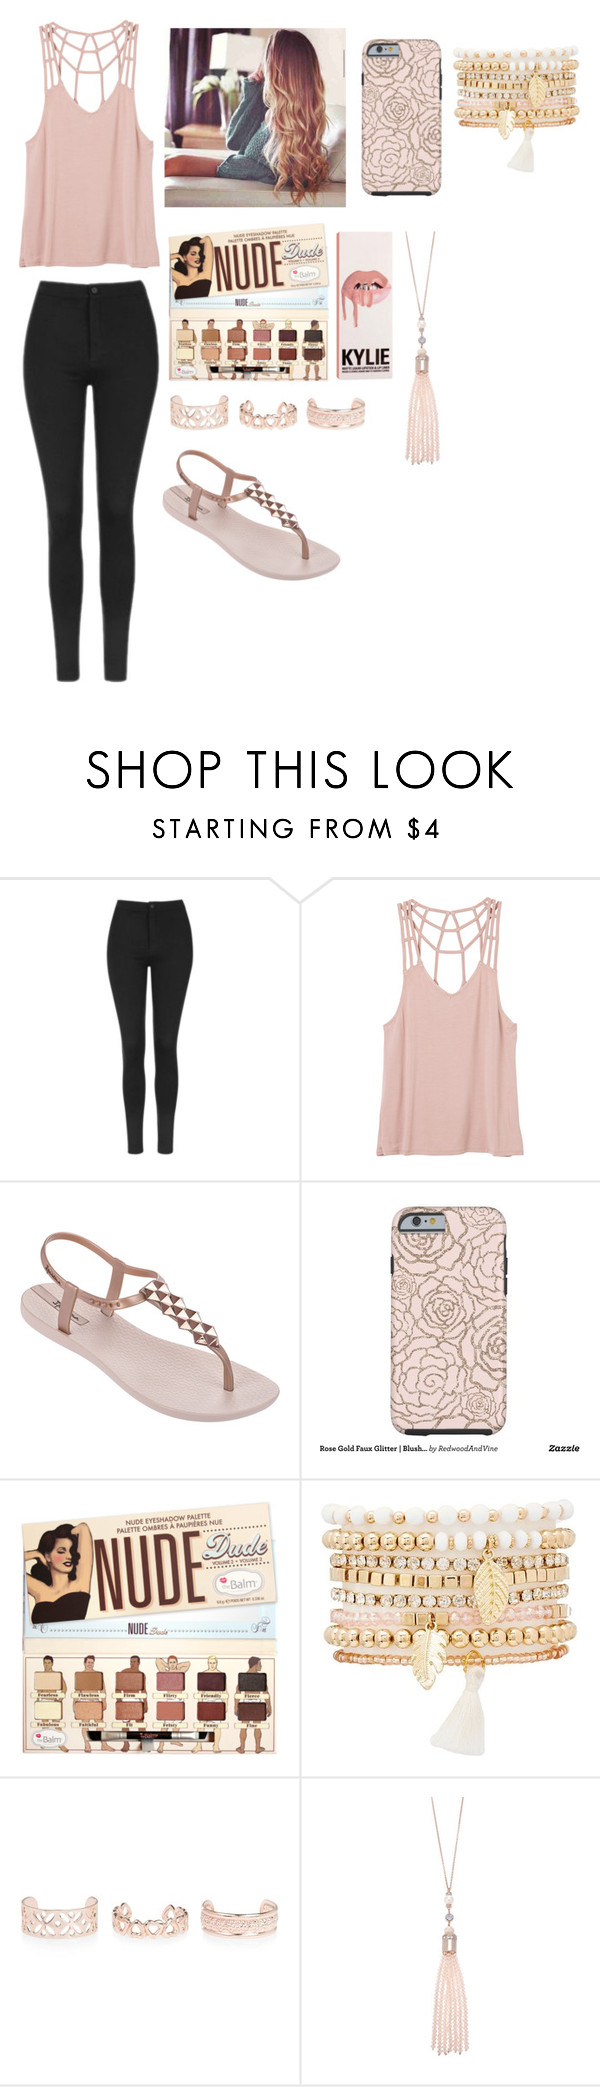 """""""Untitled #183"""" by fashiongirl3034 on Polyvore featuring Topshop, RVCA, IPANEMA, Charlotte Russe, New Look and Oasis"""